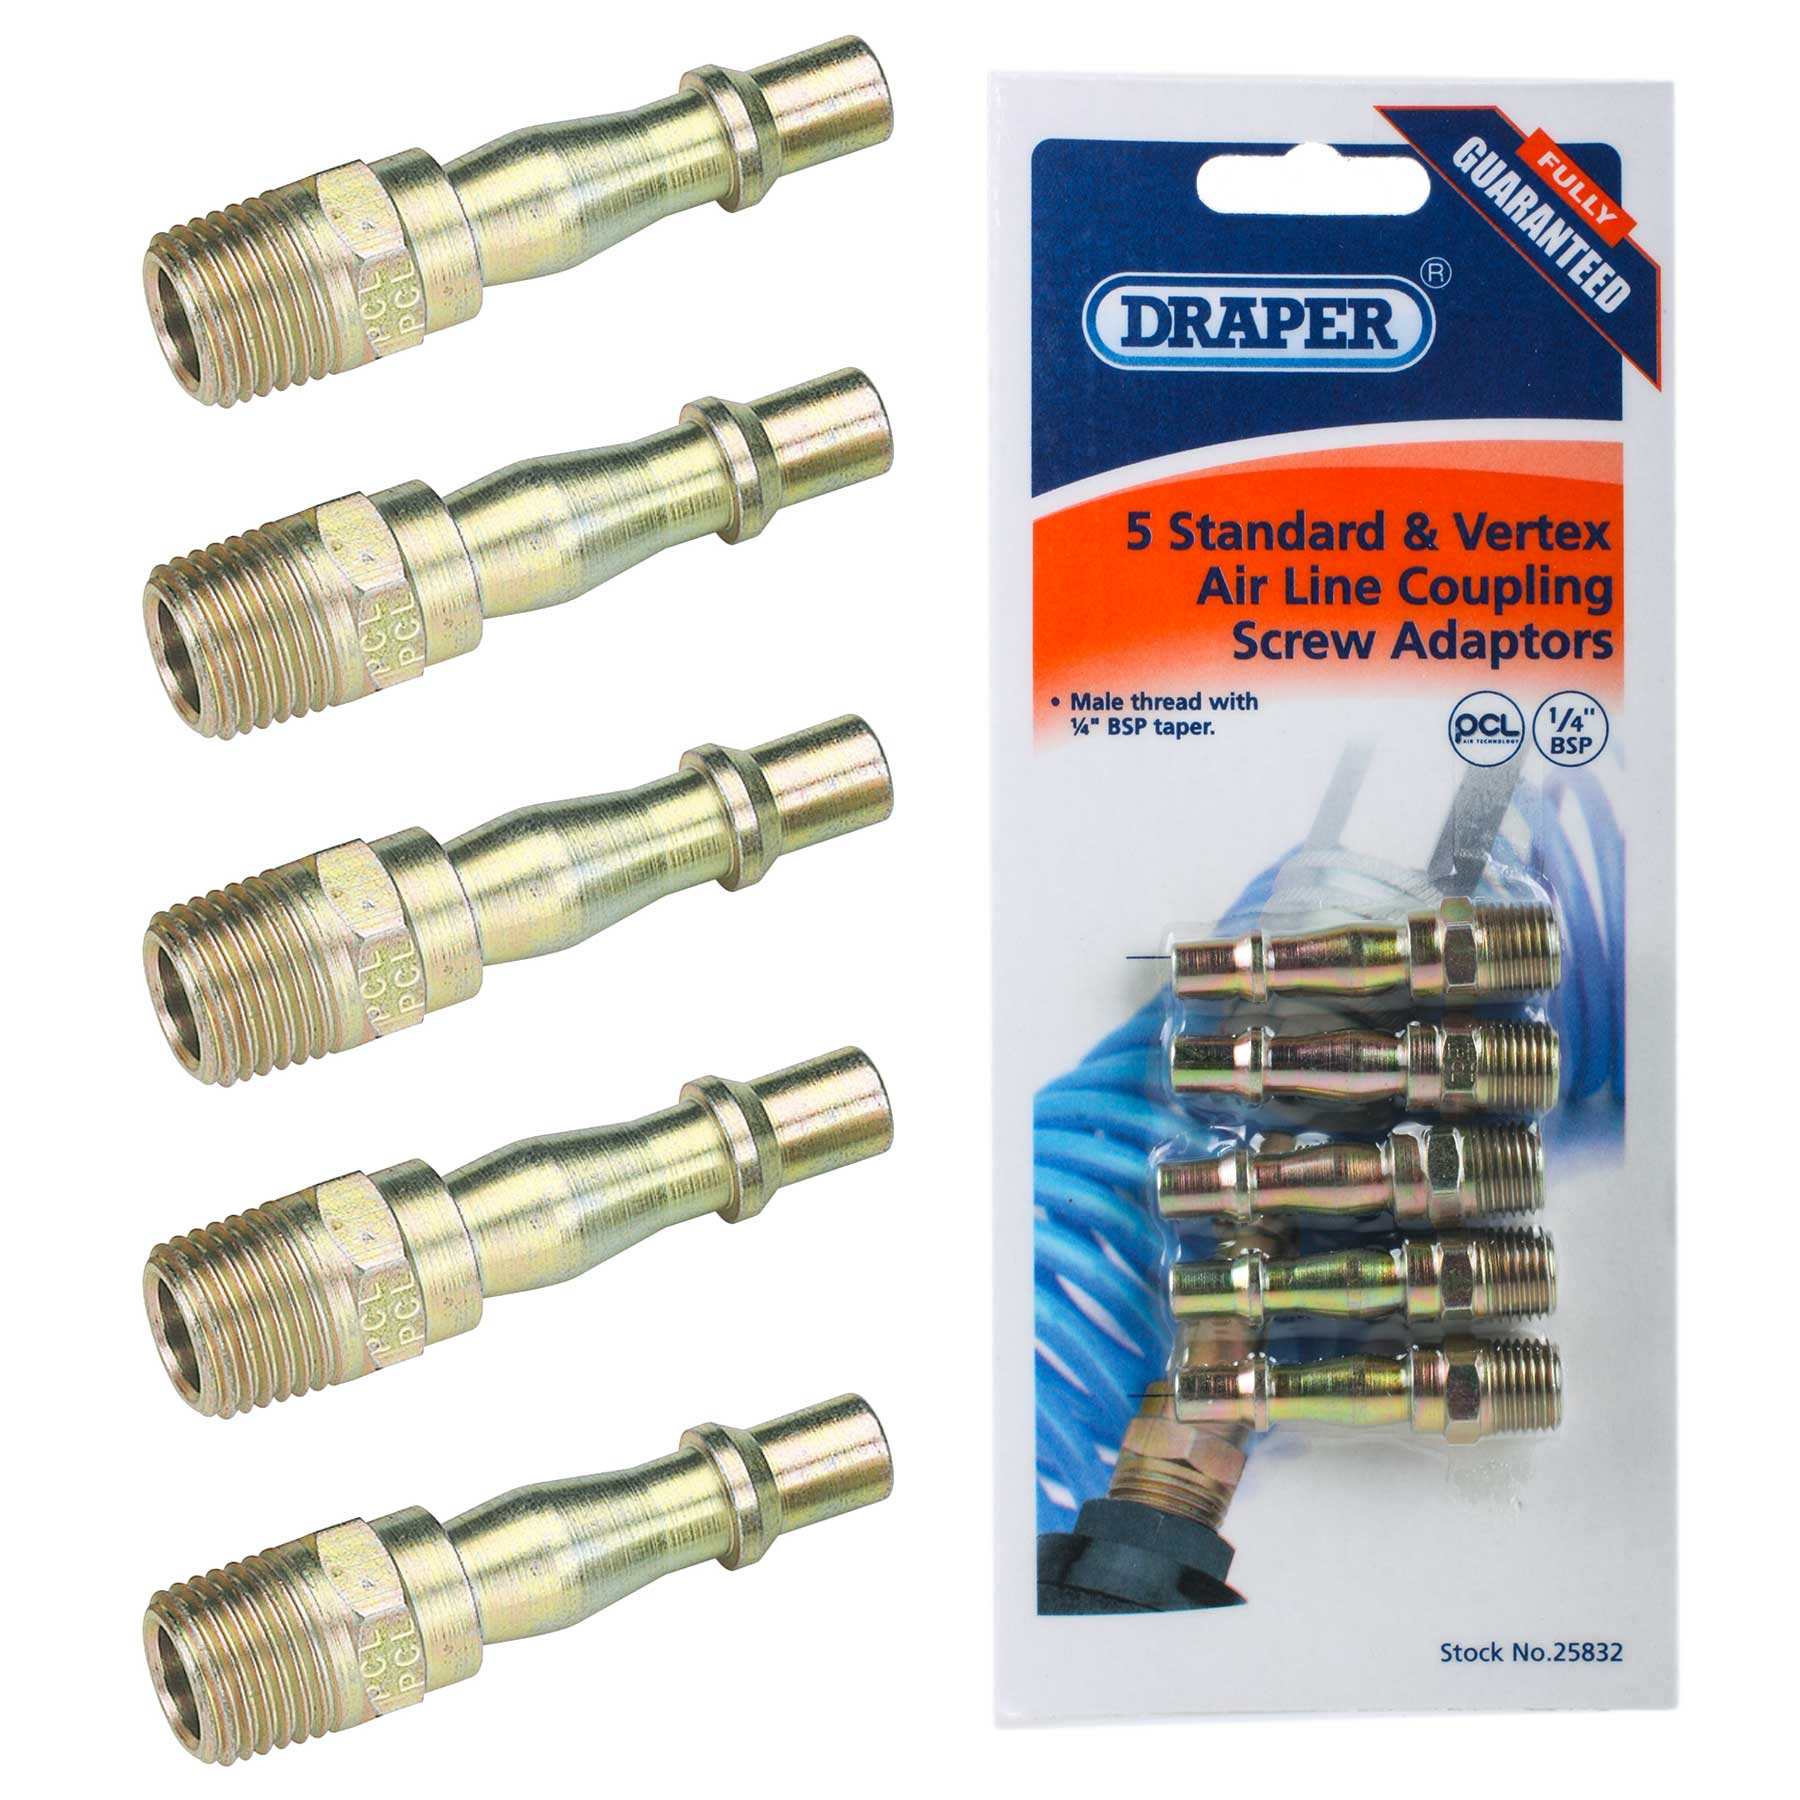 Draper 25832 A2593 5 Pack Air Tools 1/4 BSP Screwed Connectors Thumbnail 1